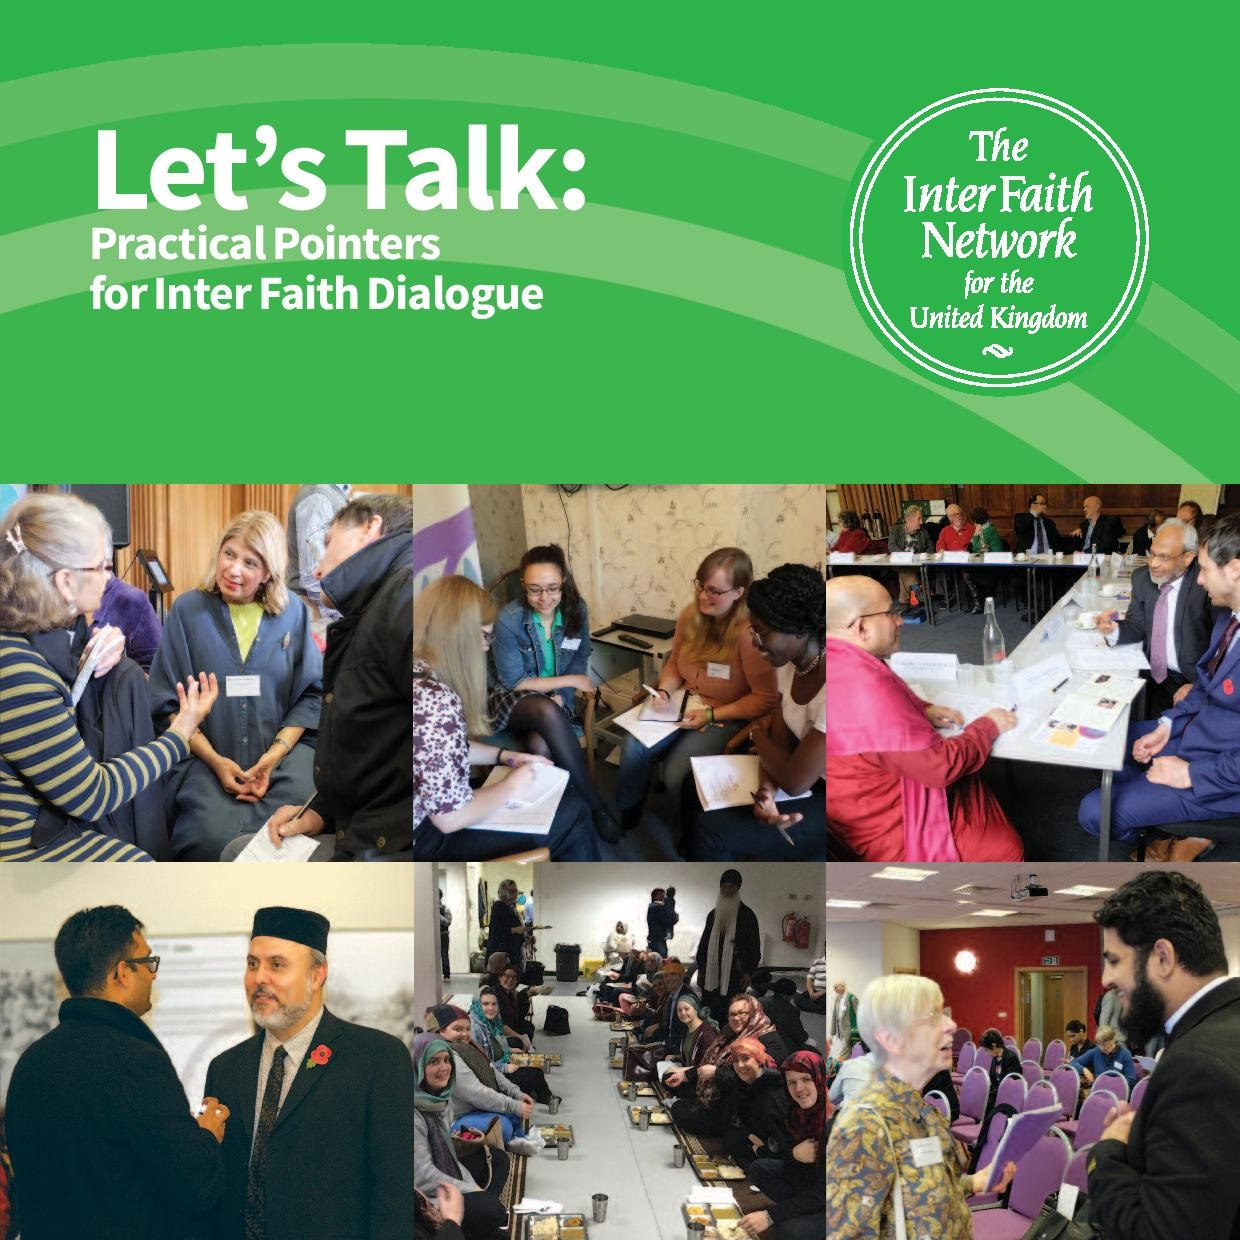 Let's Talk 2017: Practical Pointers for Inter Faith Dialogue